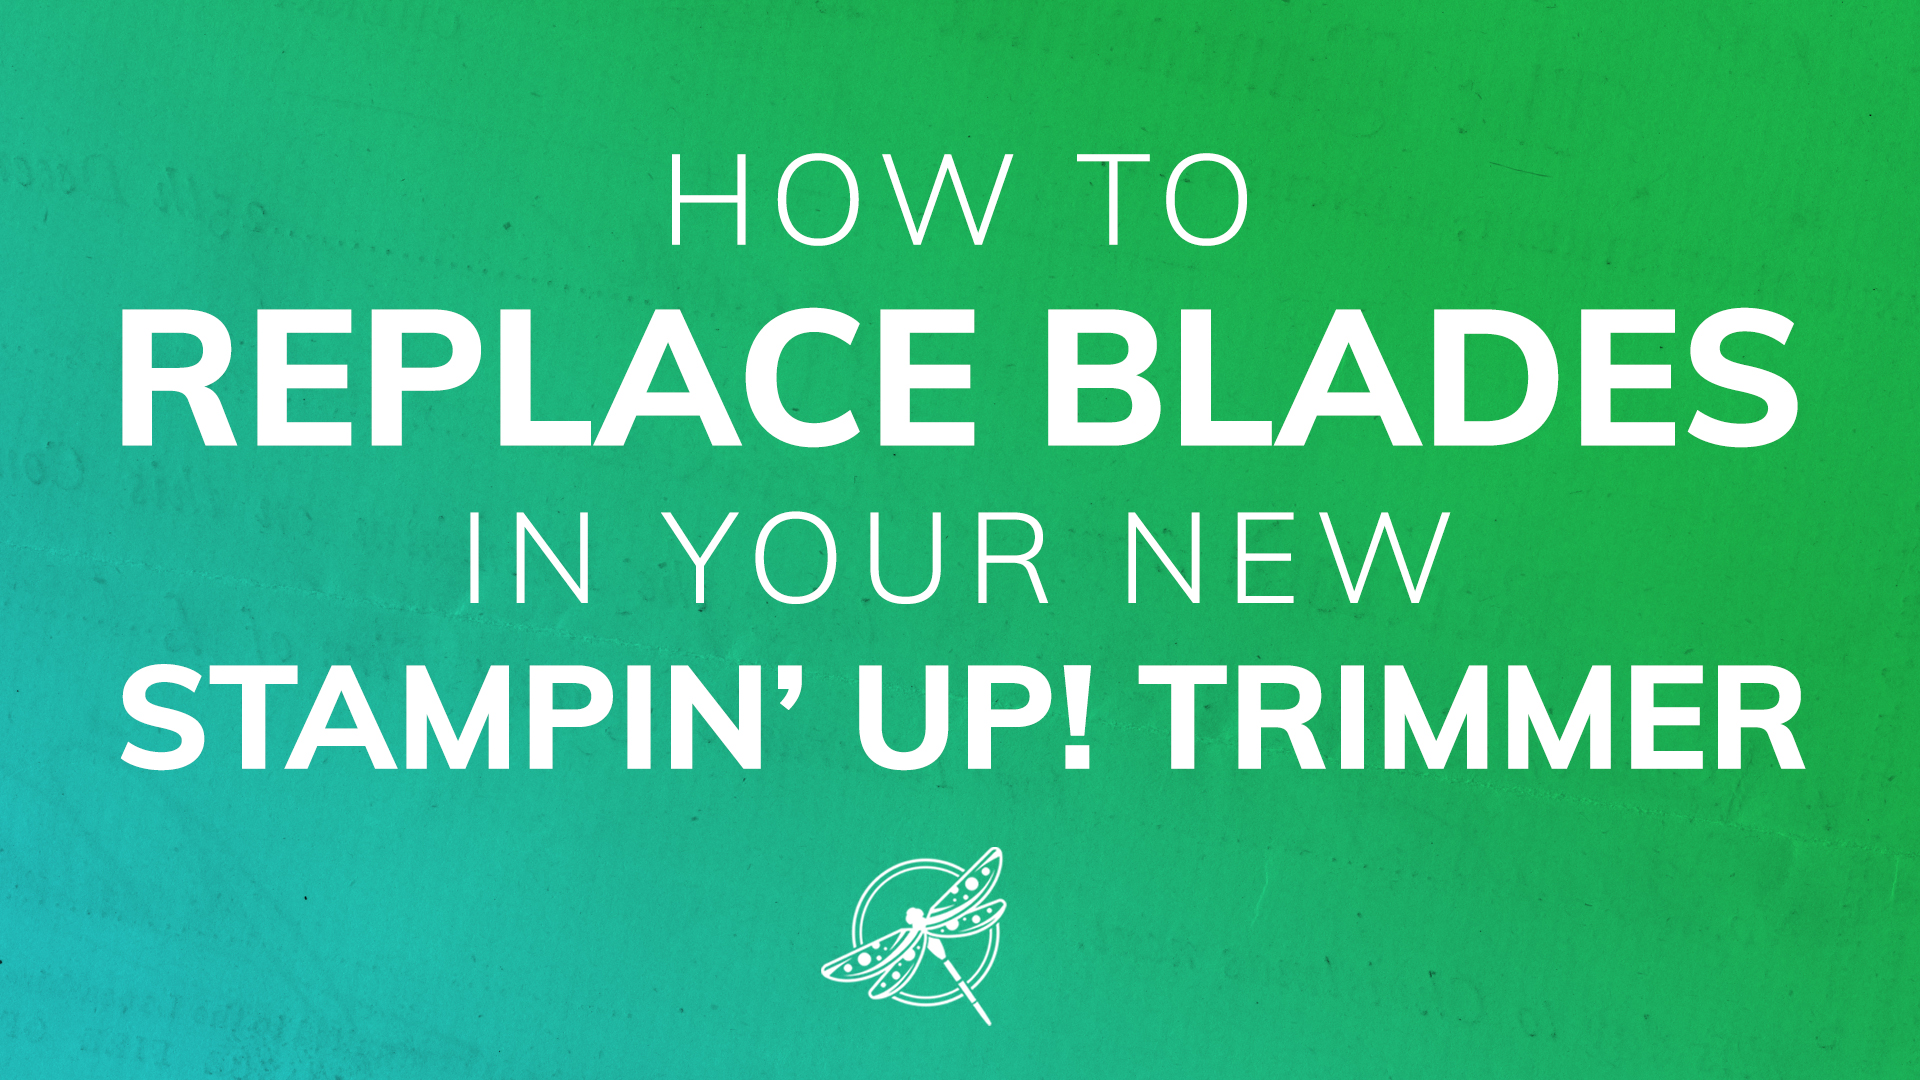 Trimmer Blades Replacement Video